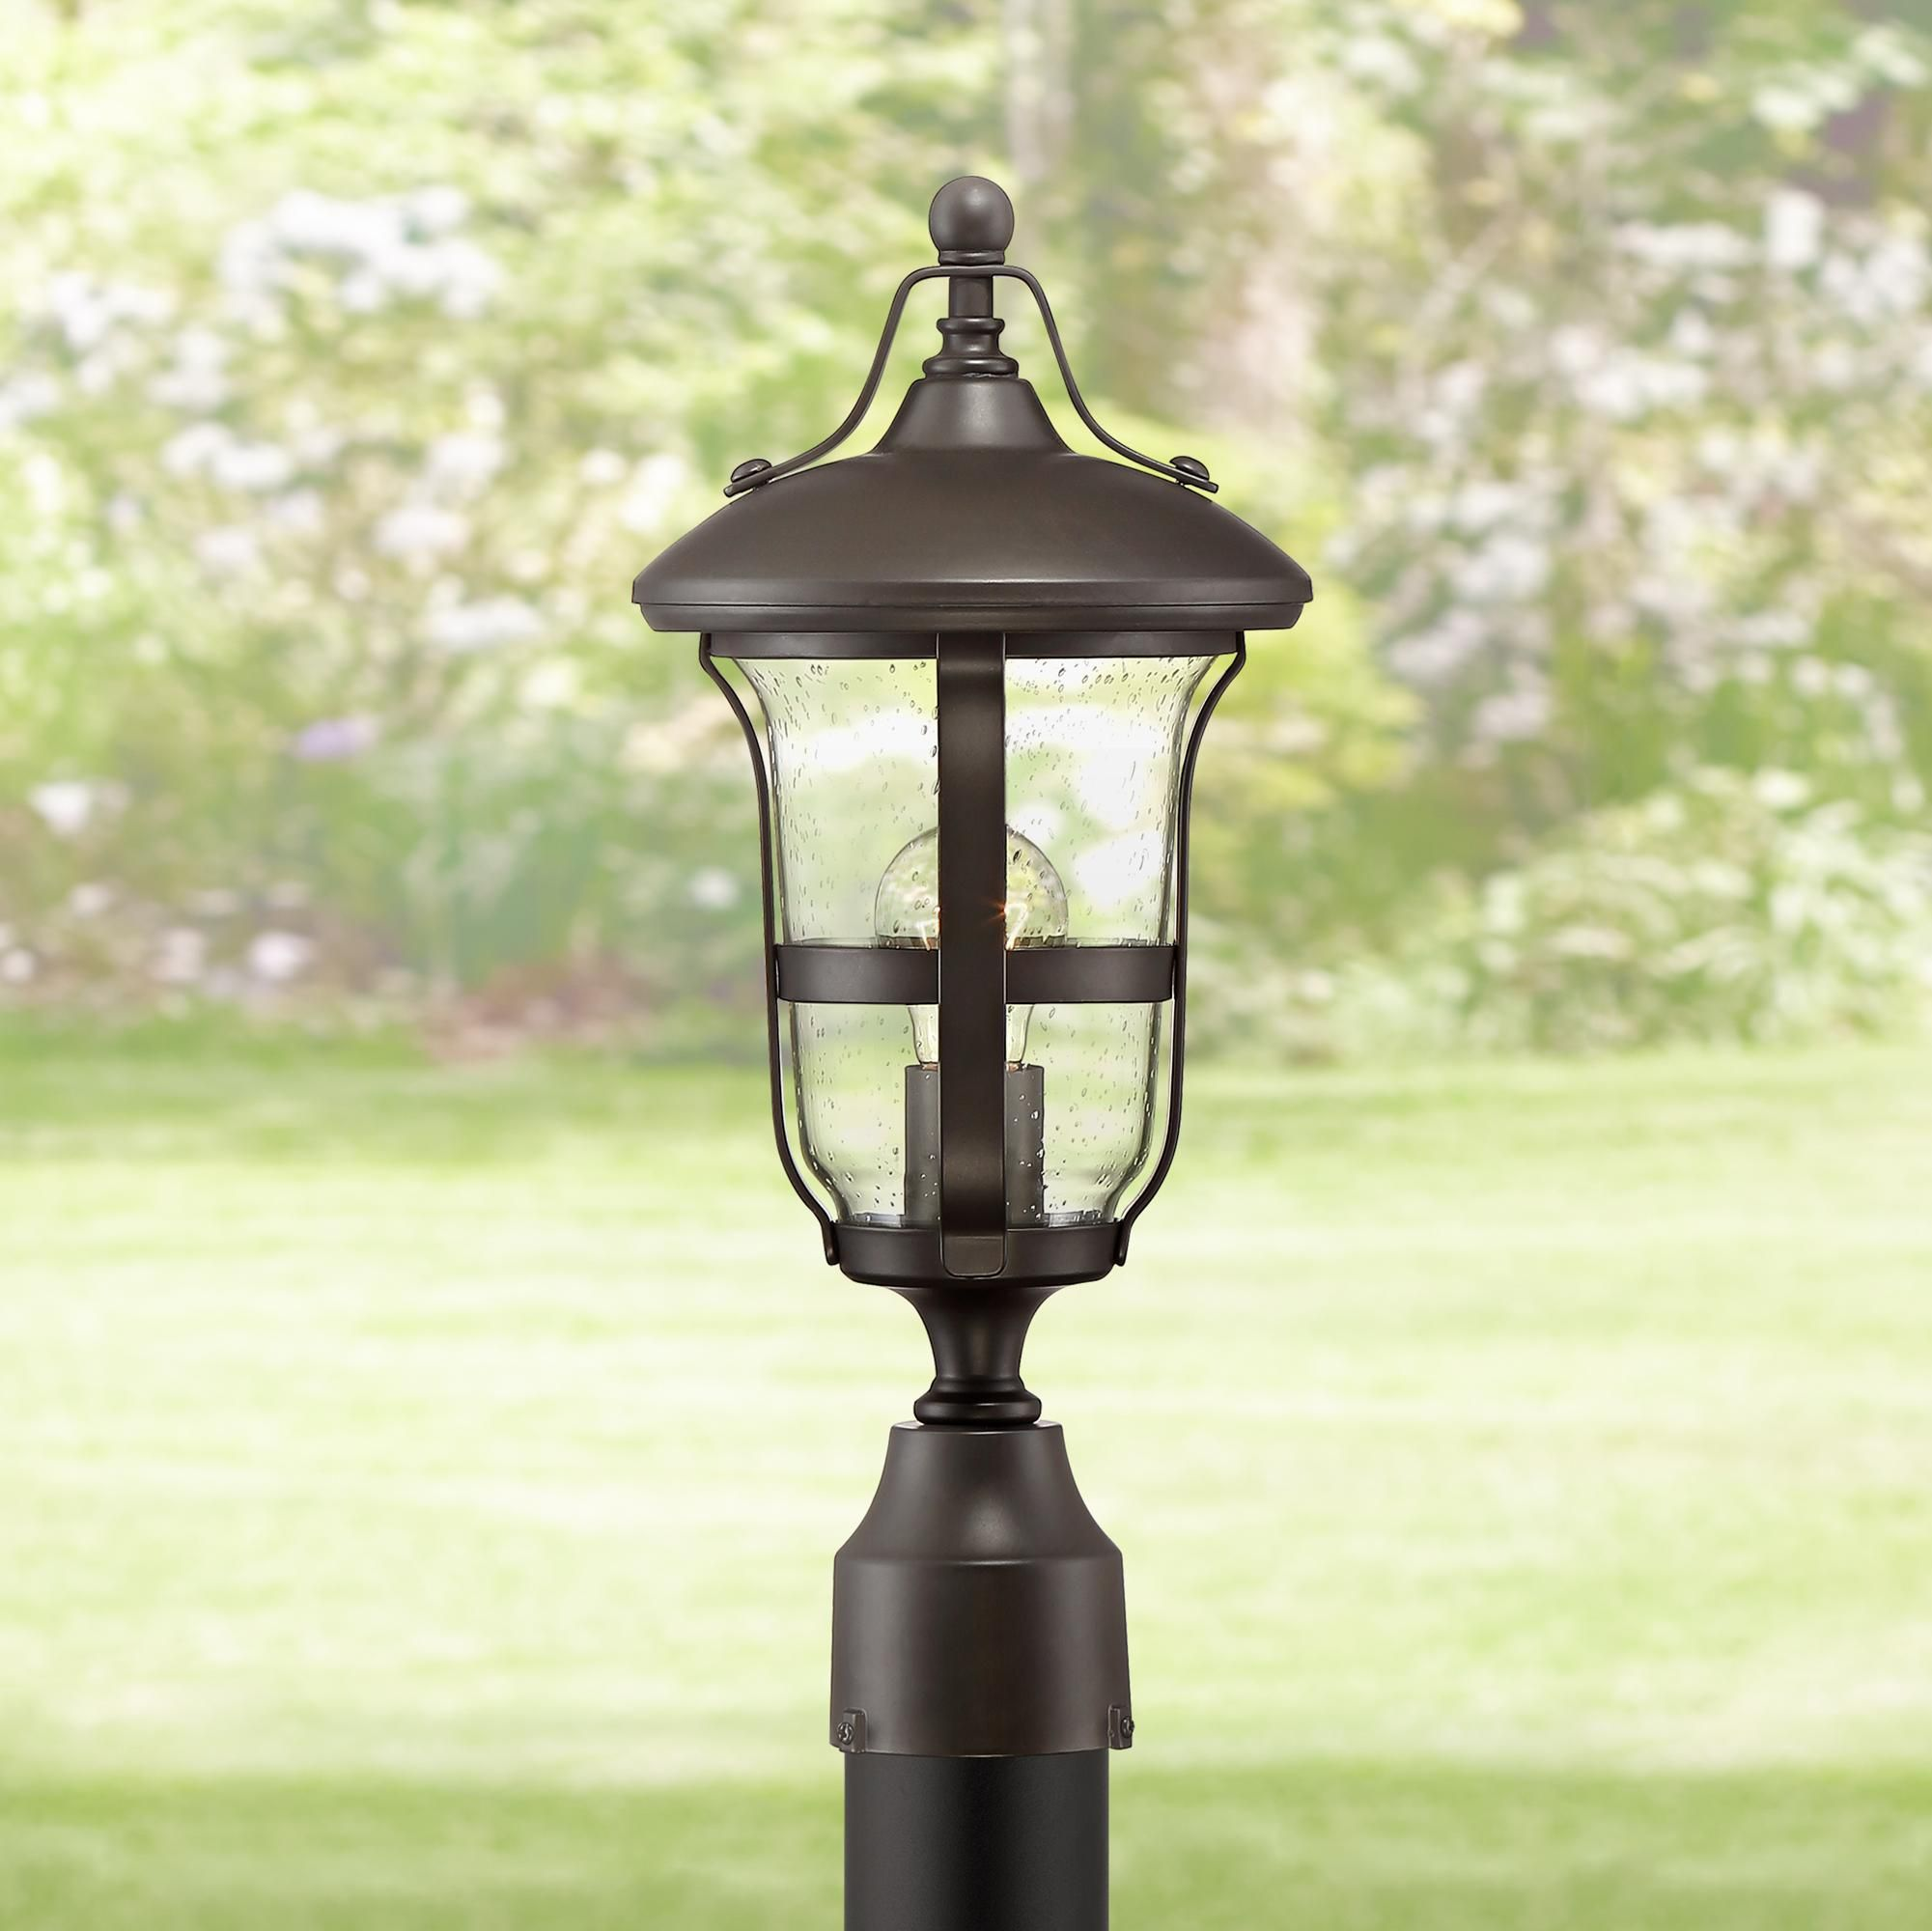 Outdoor Lighting Birmingham 17 1 4 High Bronze Outdoor Post Light Outdoor Post Lights Post Lights Solar Post Lights